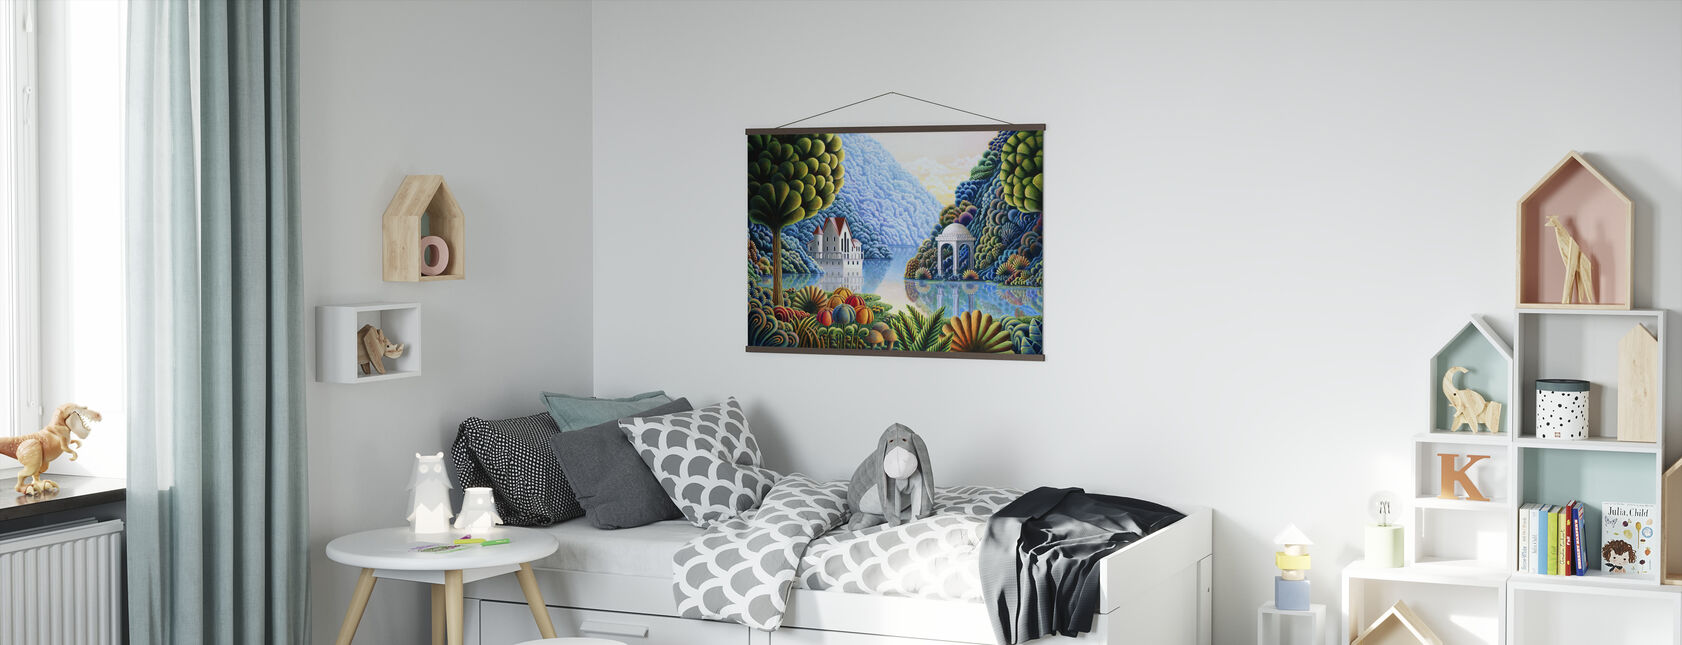 Teal Lake - Poster - Kids Room